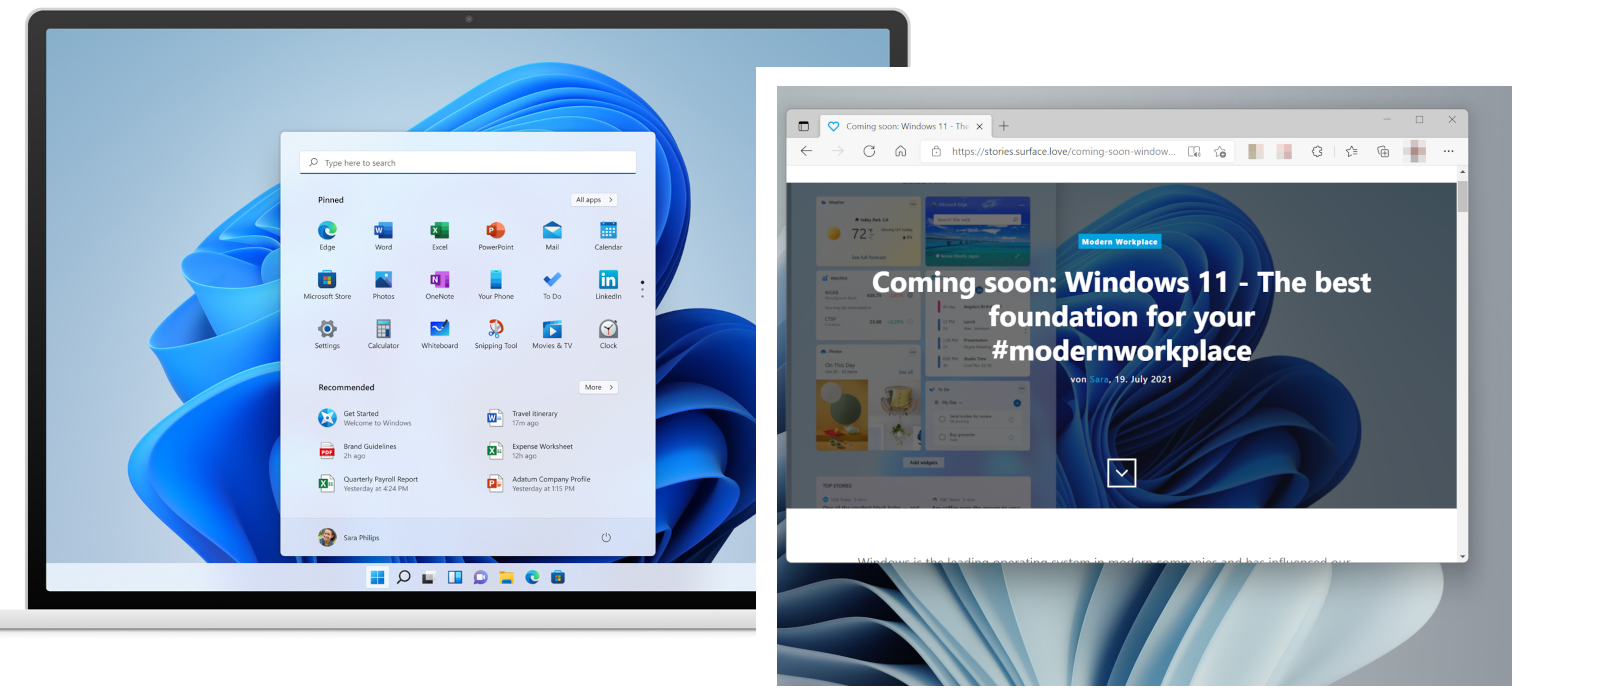 One screenshot shows the Windows button function and another screenshot shows a section of Microsoft Edge